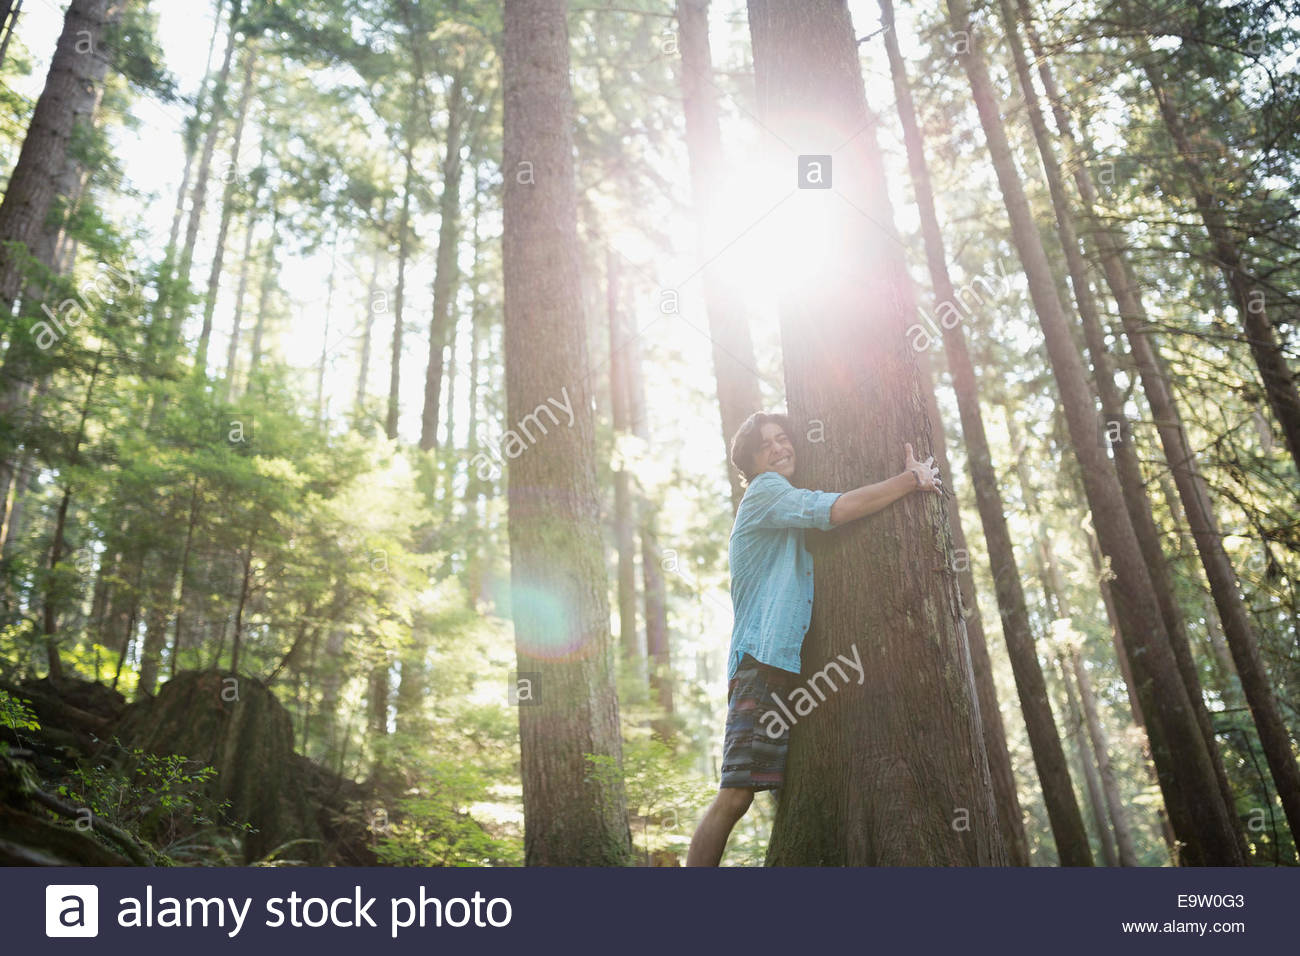 Teenage boy hugging tree in sunny woods - Stock Image